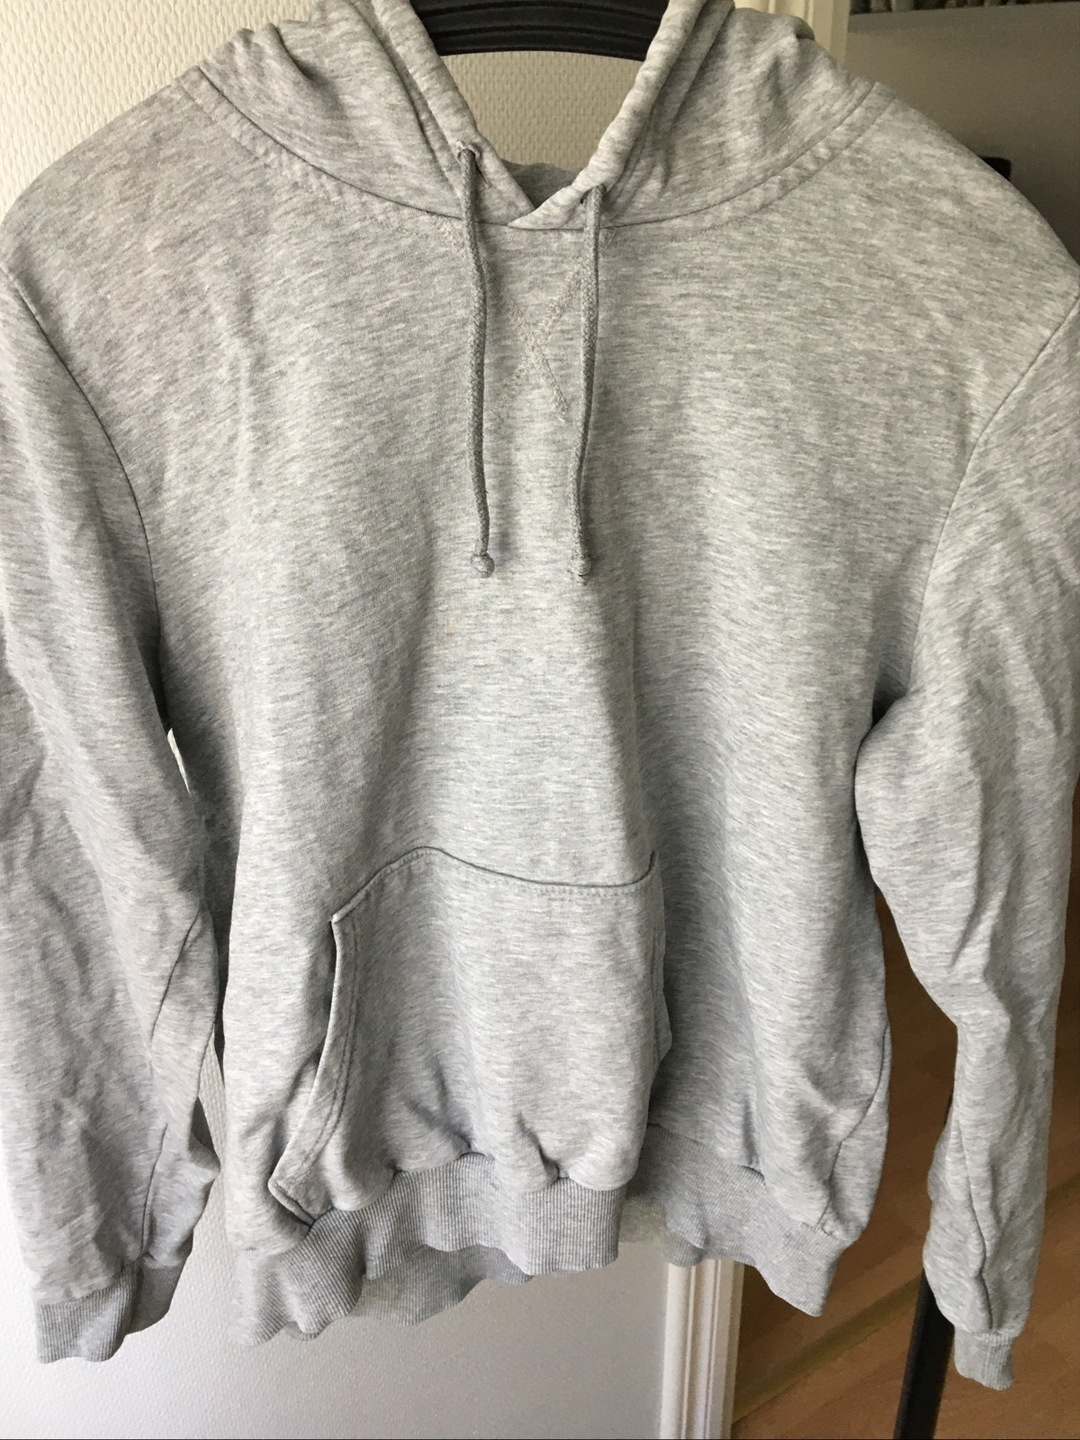 Women's hoodies & sweatshirts - H&M photo 1